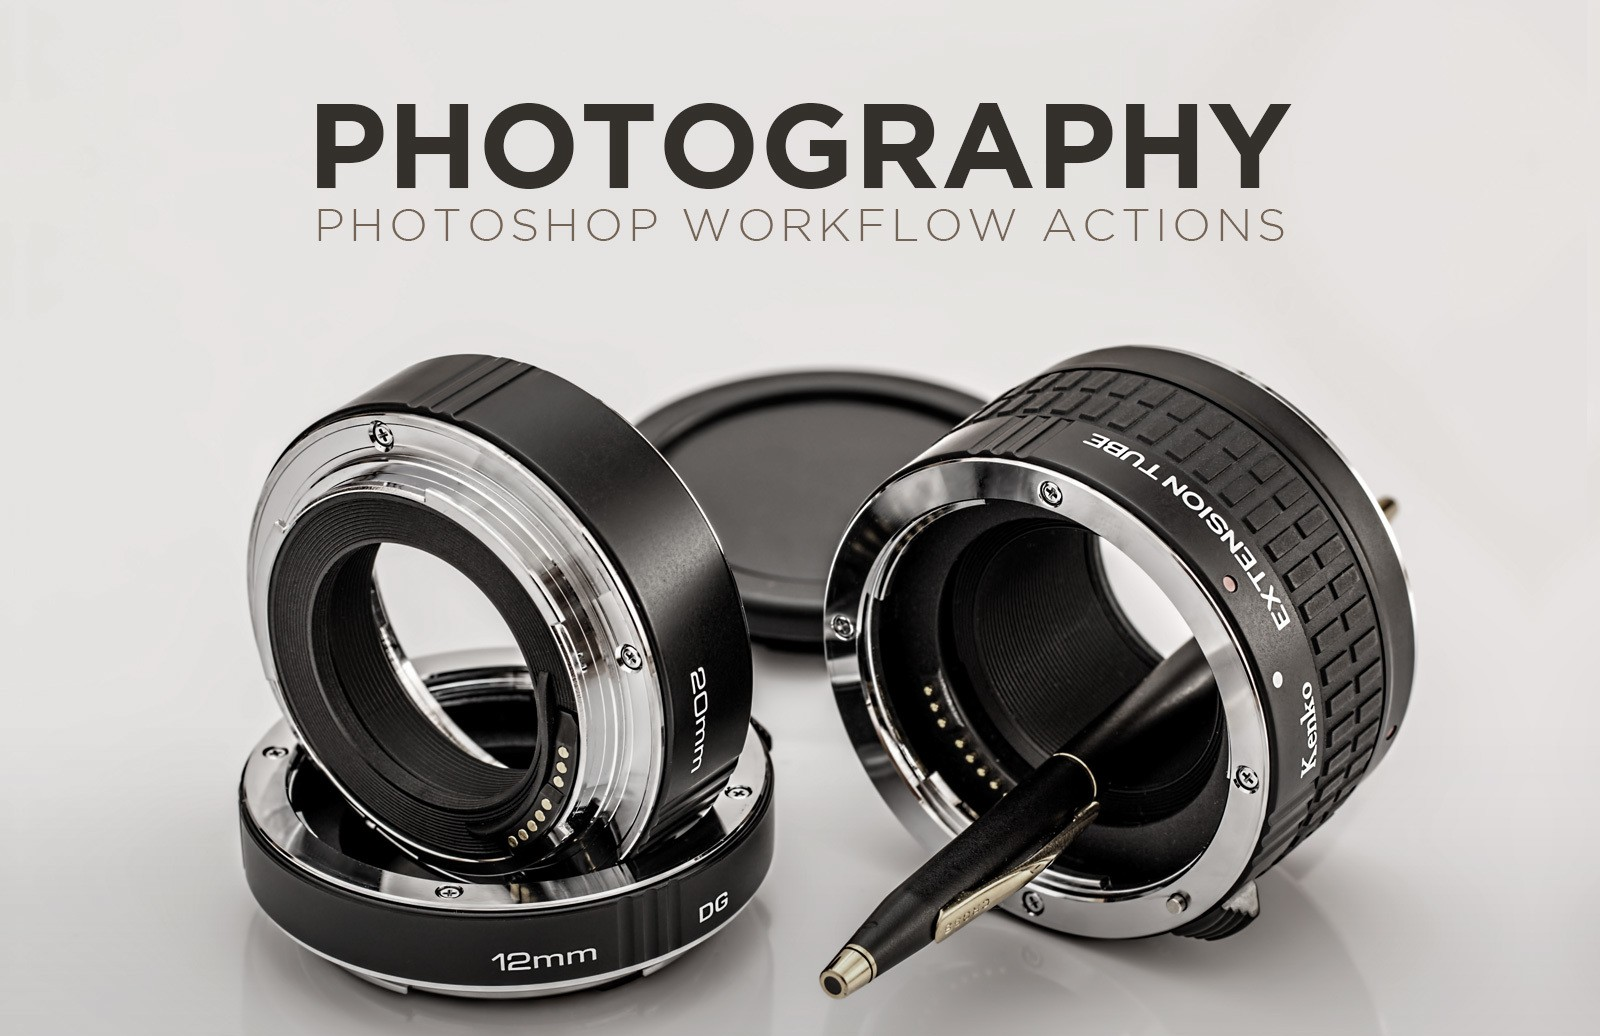 Photography Photoshop Workflow Actions 1